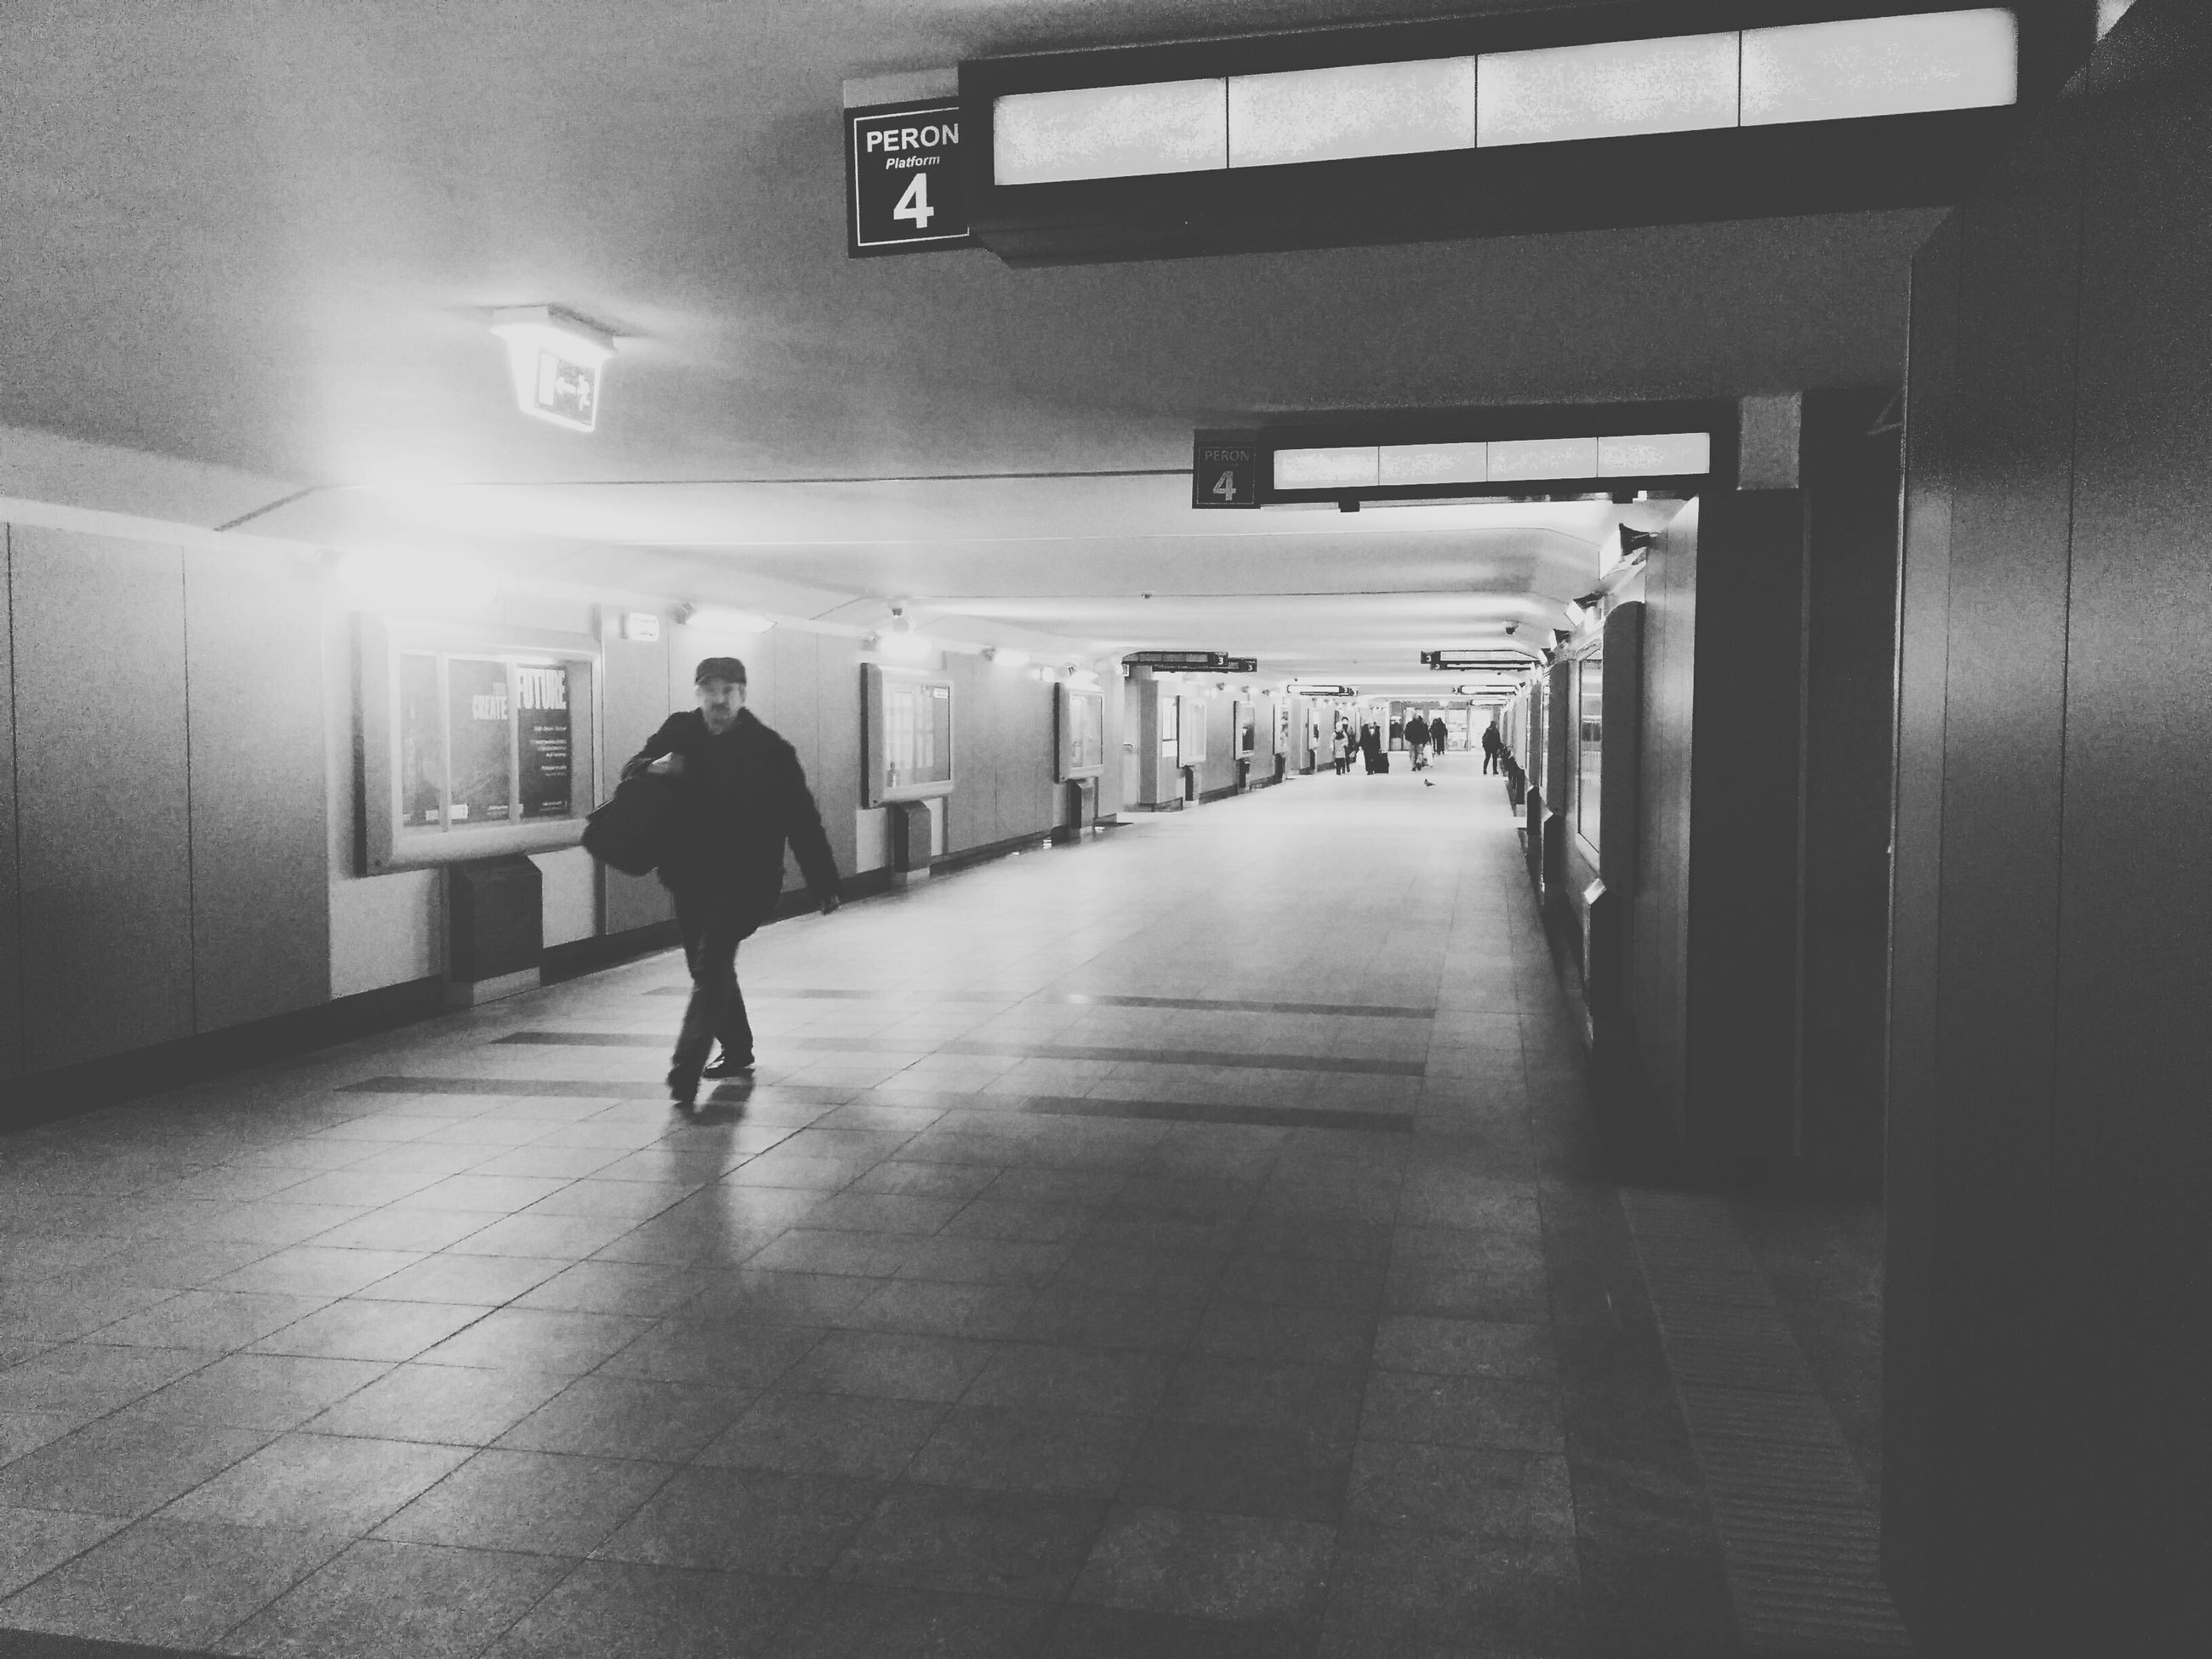 indoors, full length, men, illuminated, walking, lifestyles, rear view, corridor, architecture, built structure, the way forward, person, subway, leisure activity, flooring, lighting equipment, casual clothing, wall - building feature